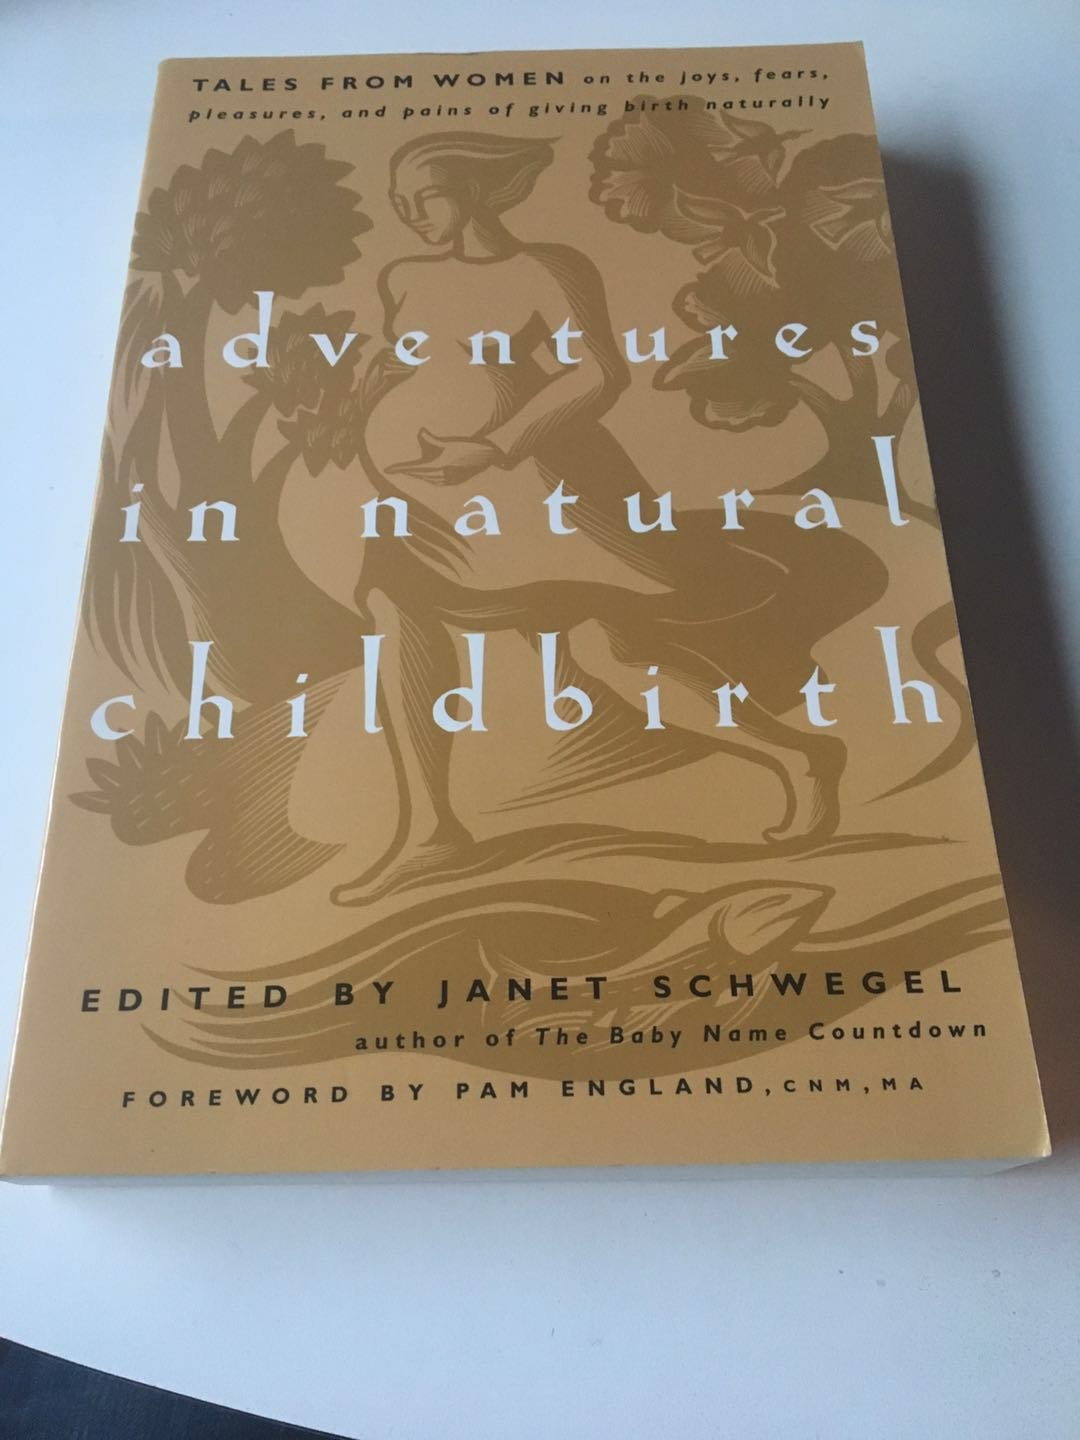 Adventures in Natural Childbirth: Tales from Women on the Joys, Fears... 2005 by Schwegel & England